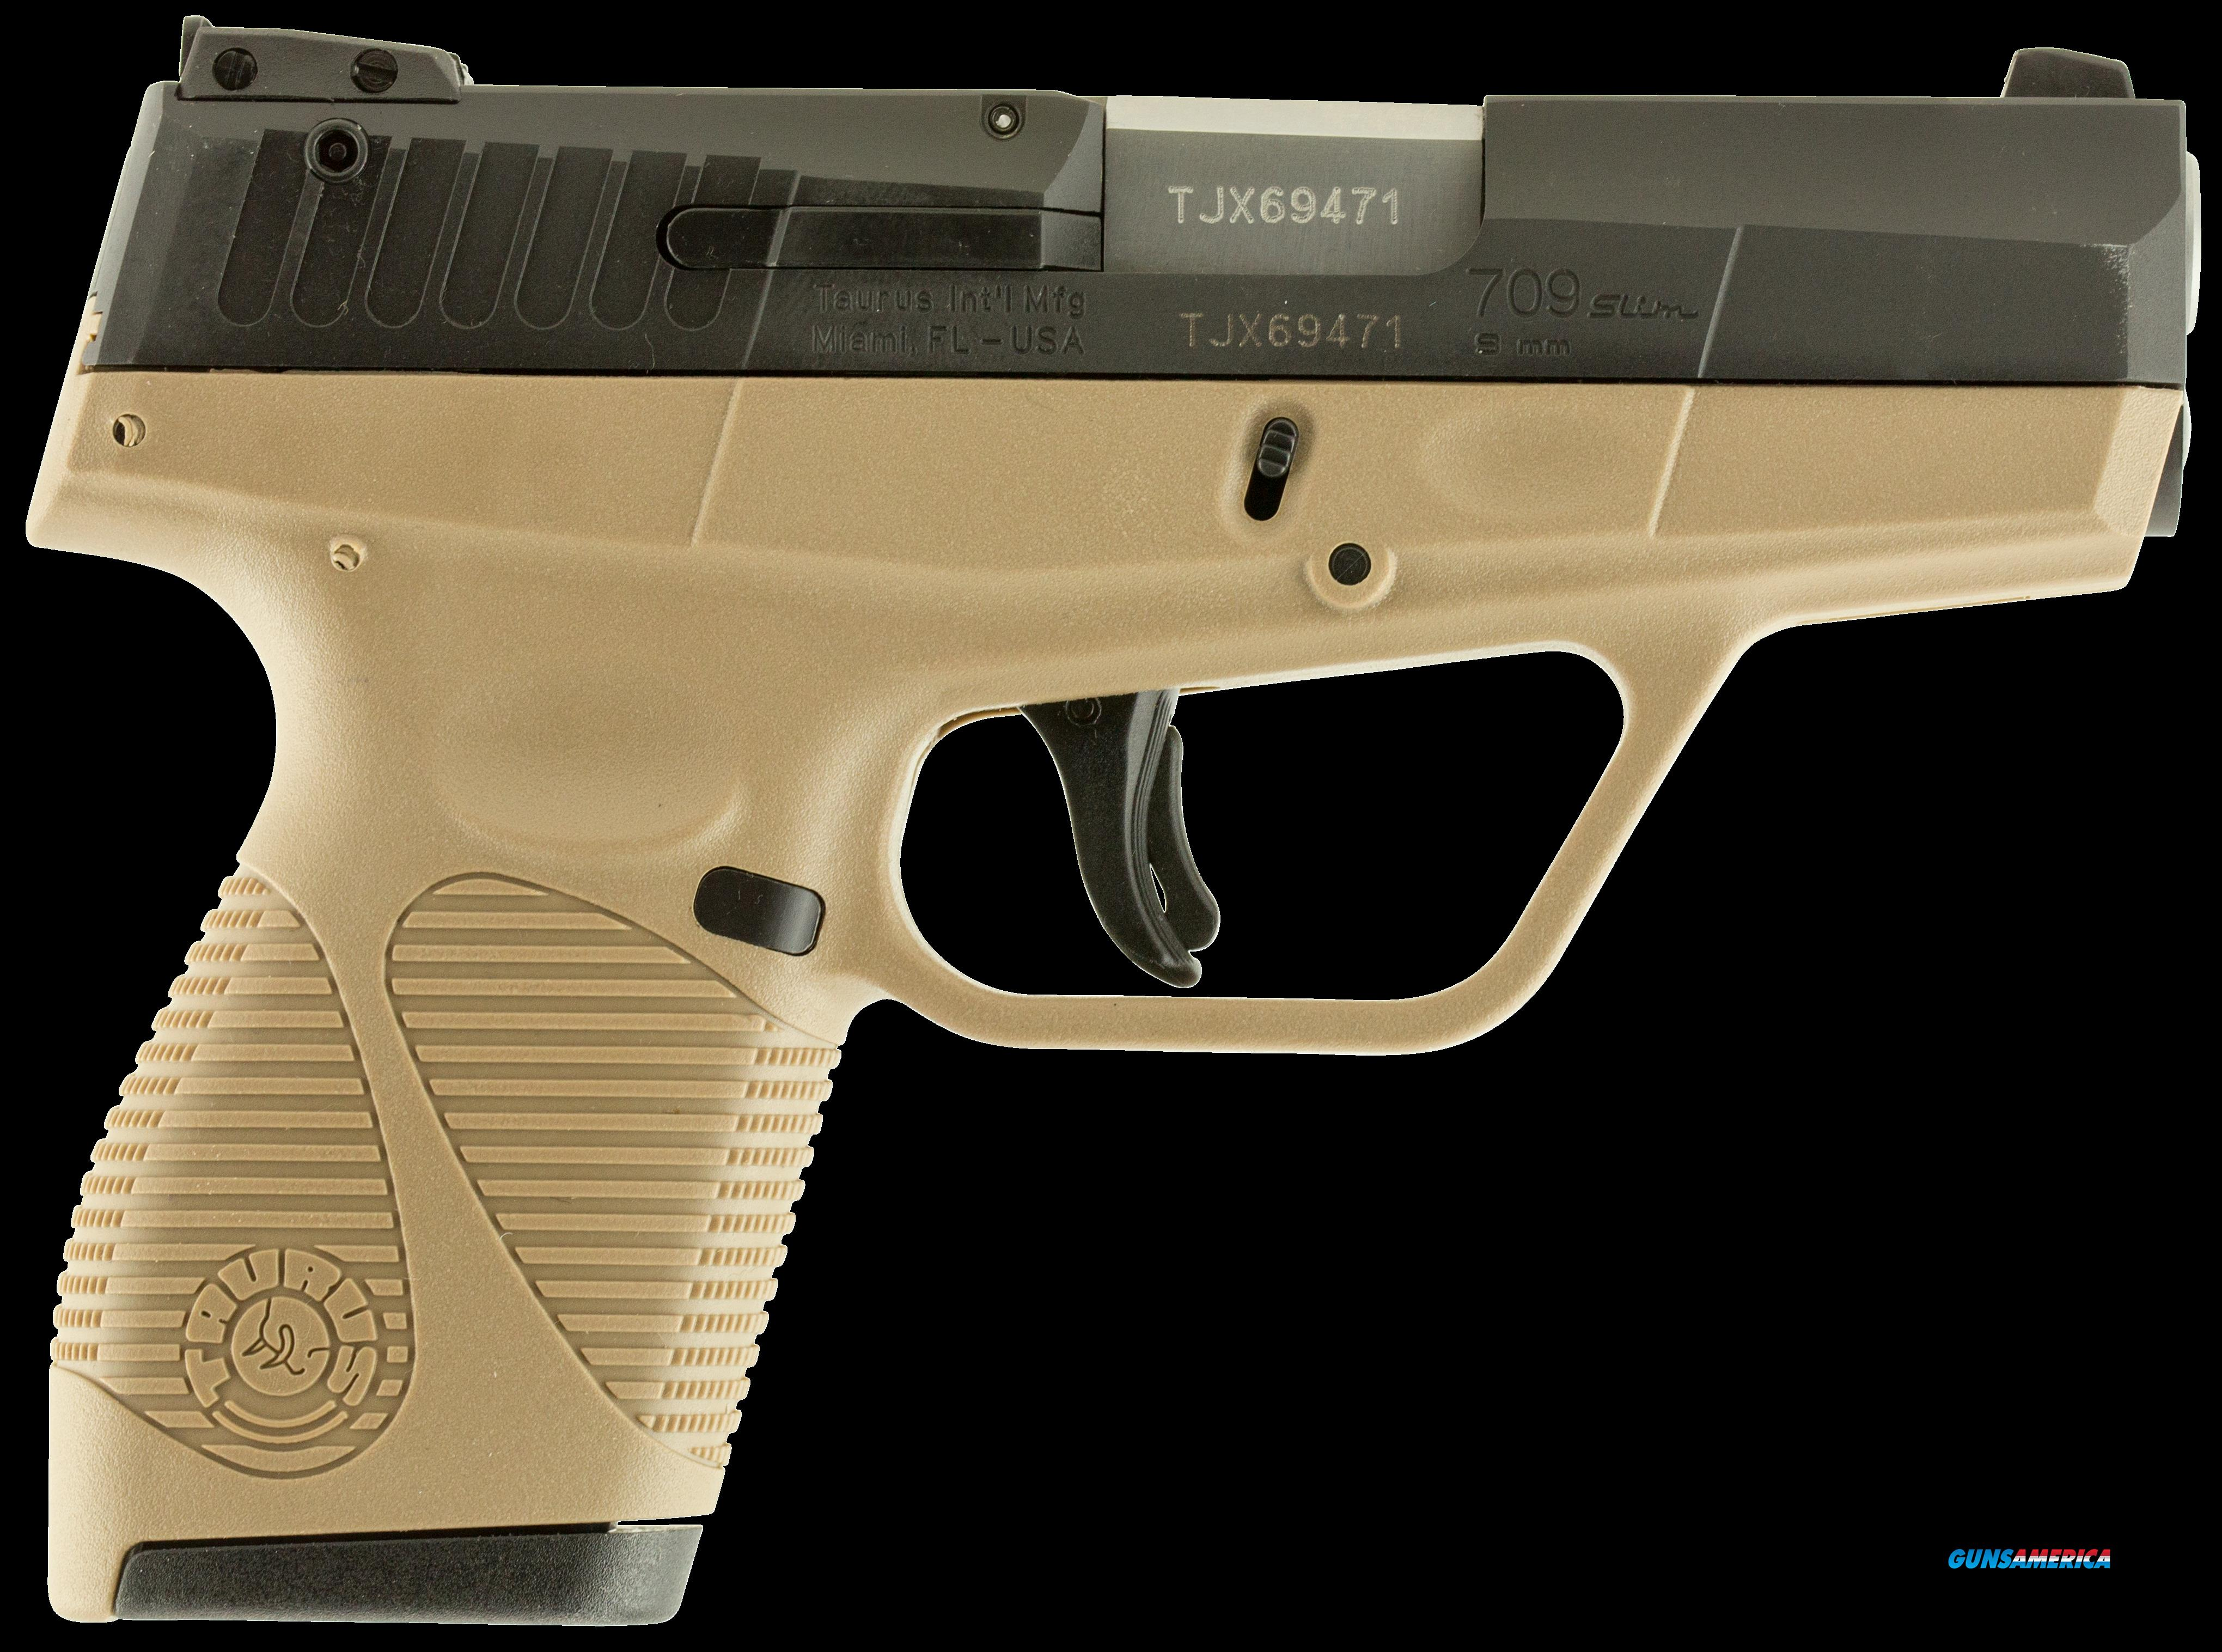 709 slim 9mm pistol -  Userimages 146248 963374718 11388242 Jpg Description The Taurus 709 Slim Is A Compact 9mm Pistol Perfect For